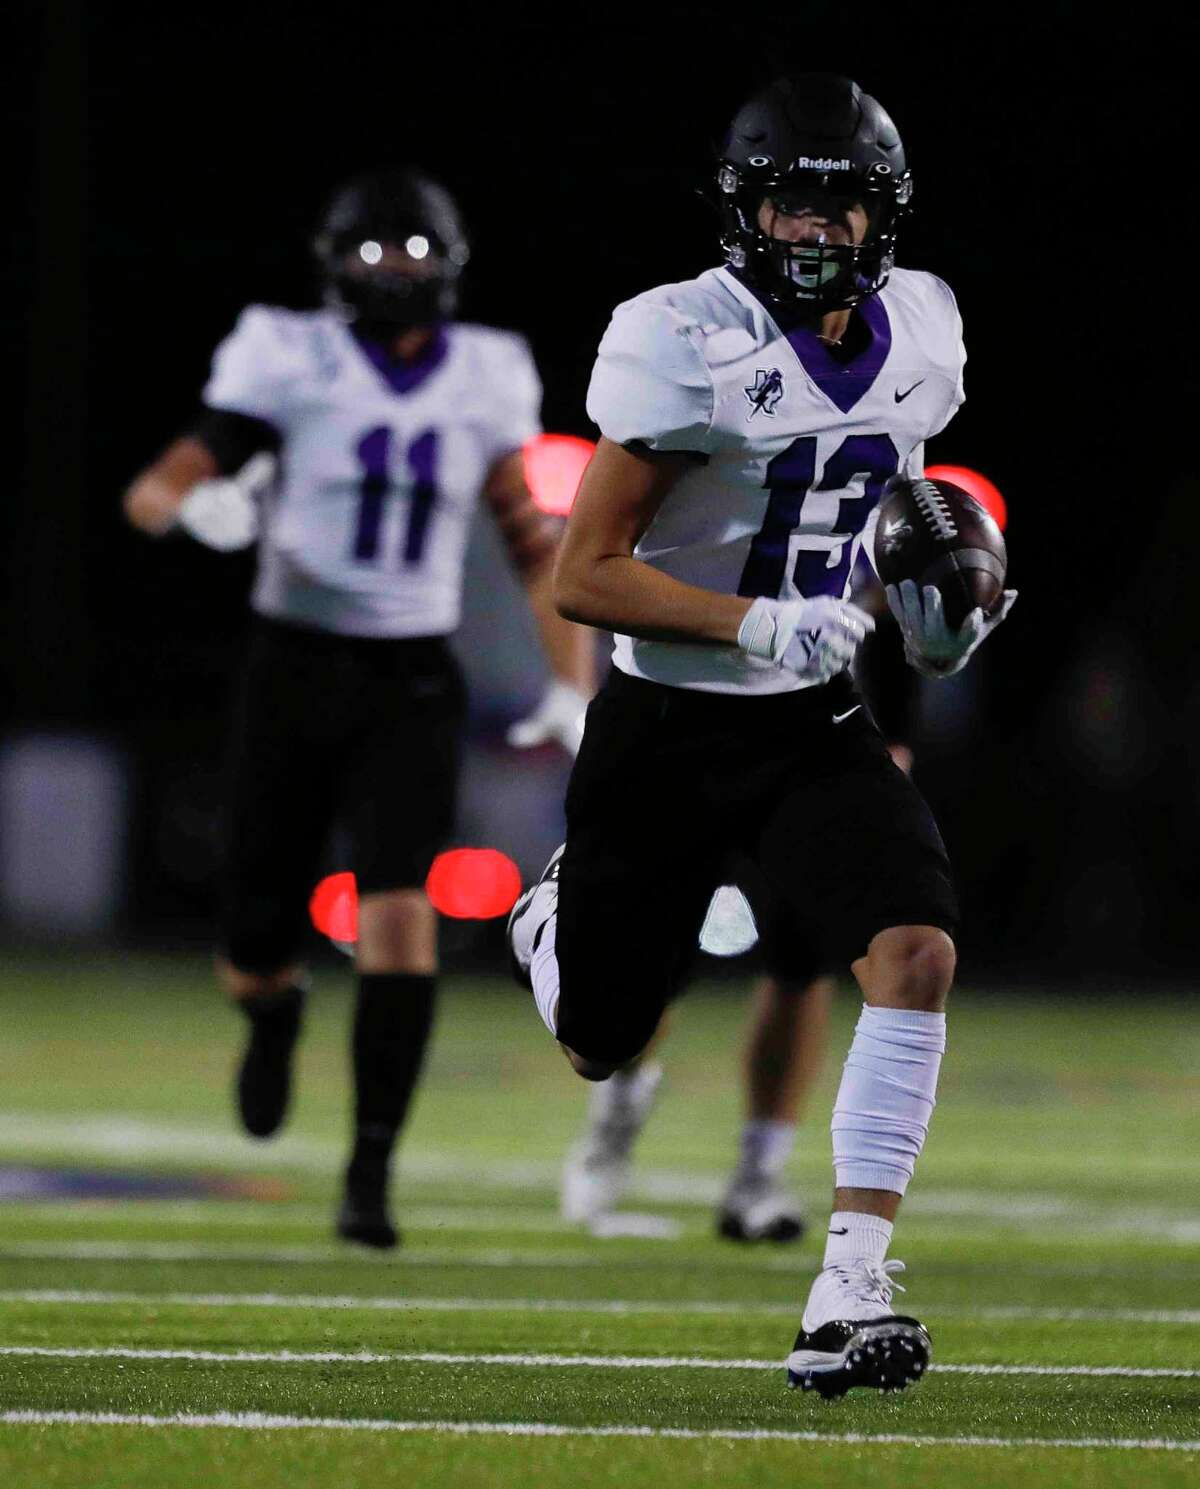 Fulshear wide receiver Jan Medica (13) runs for a 52-yard touchdown during the first quarter of a high school football game, Friday, Sept. 24, 2021, in Montgomery.